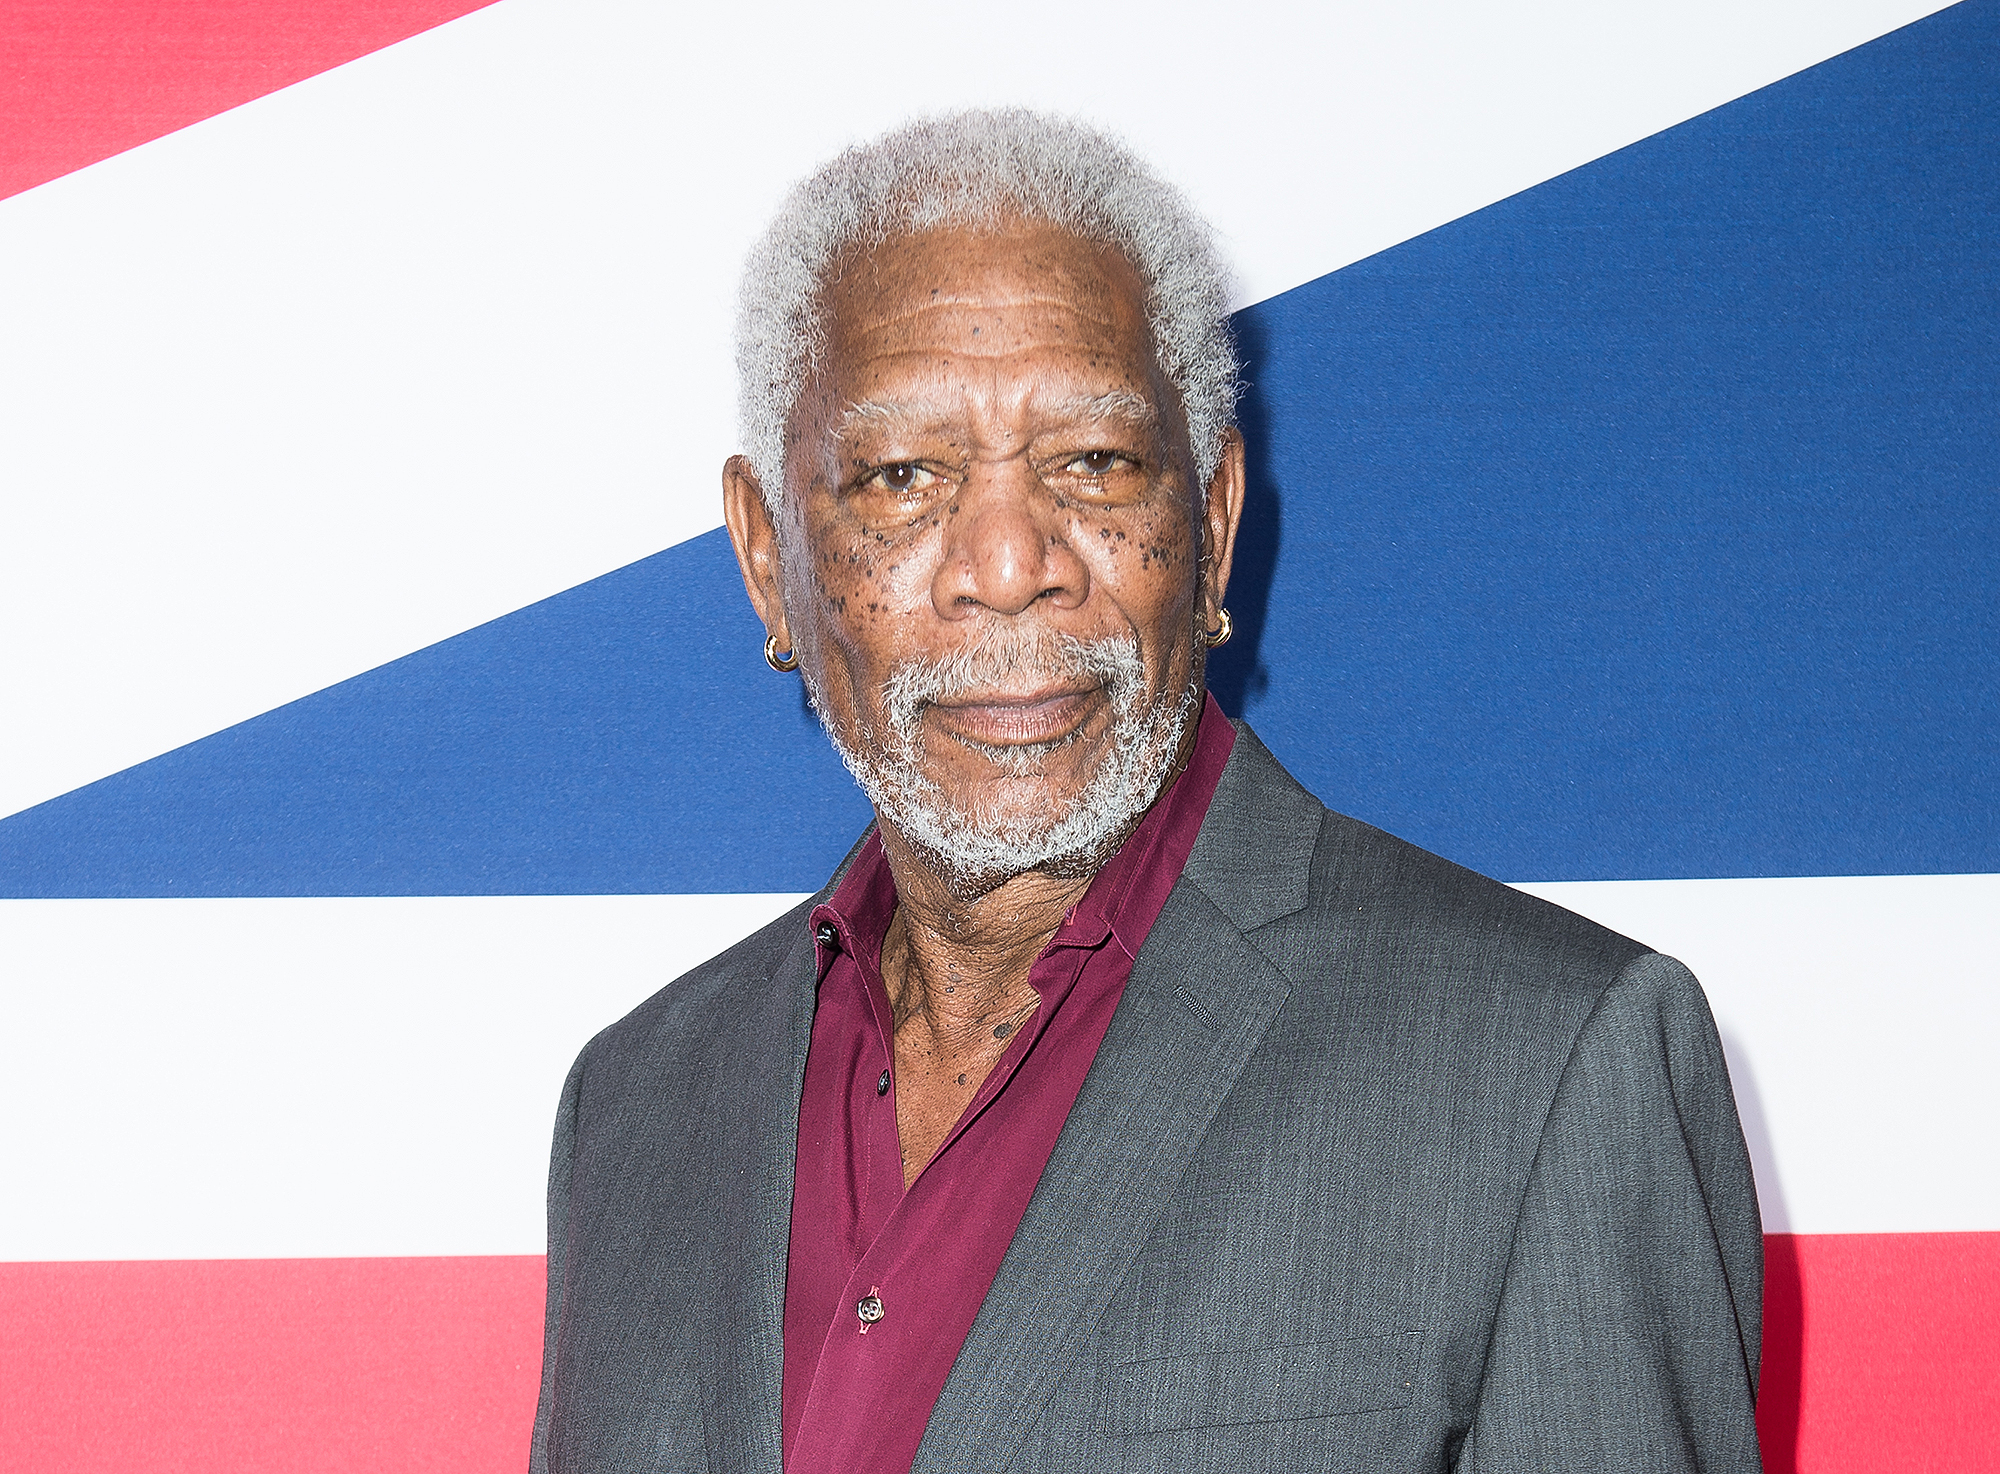 Morgan Freeman's Attorney Demands Retraction of CNN's Sexual Harassment Story